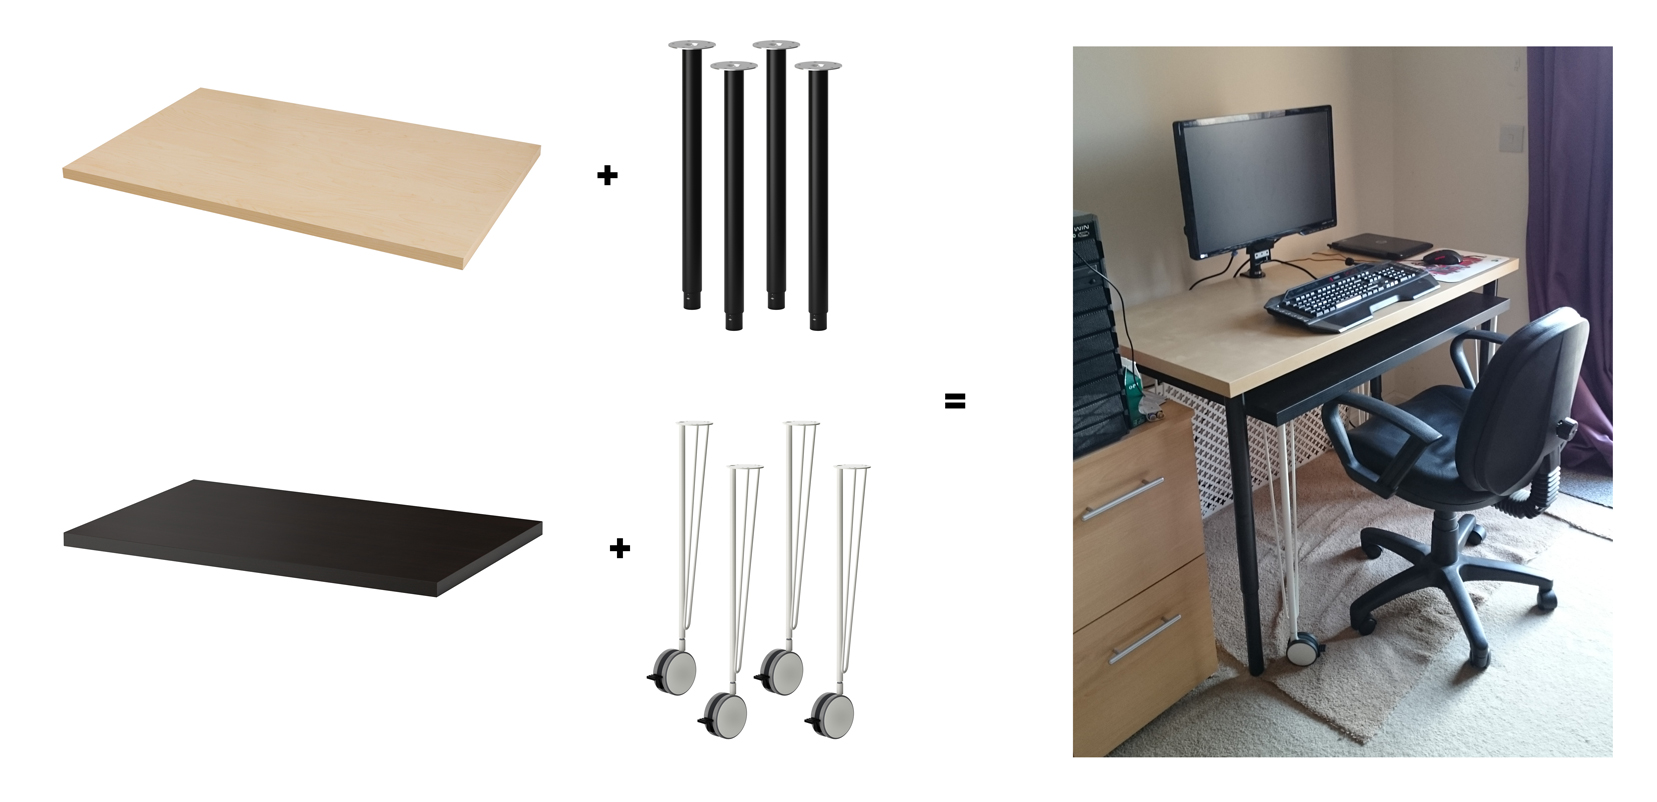 Ikea Hack   Two in One PC   Craft Desk       1 Creativity Two desks in one